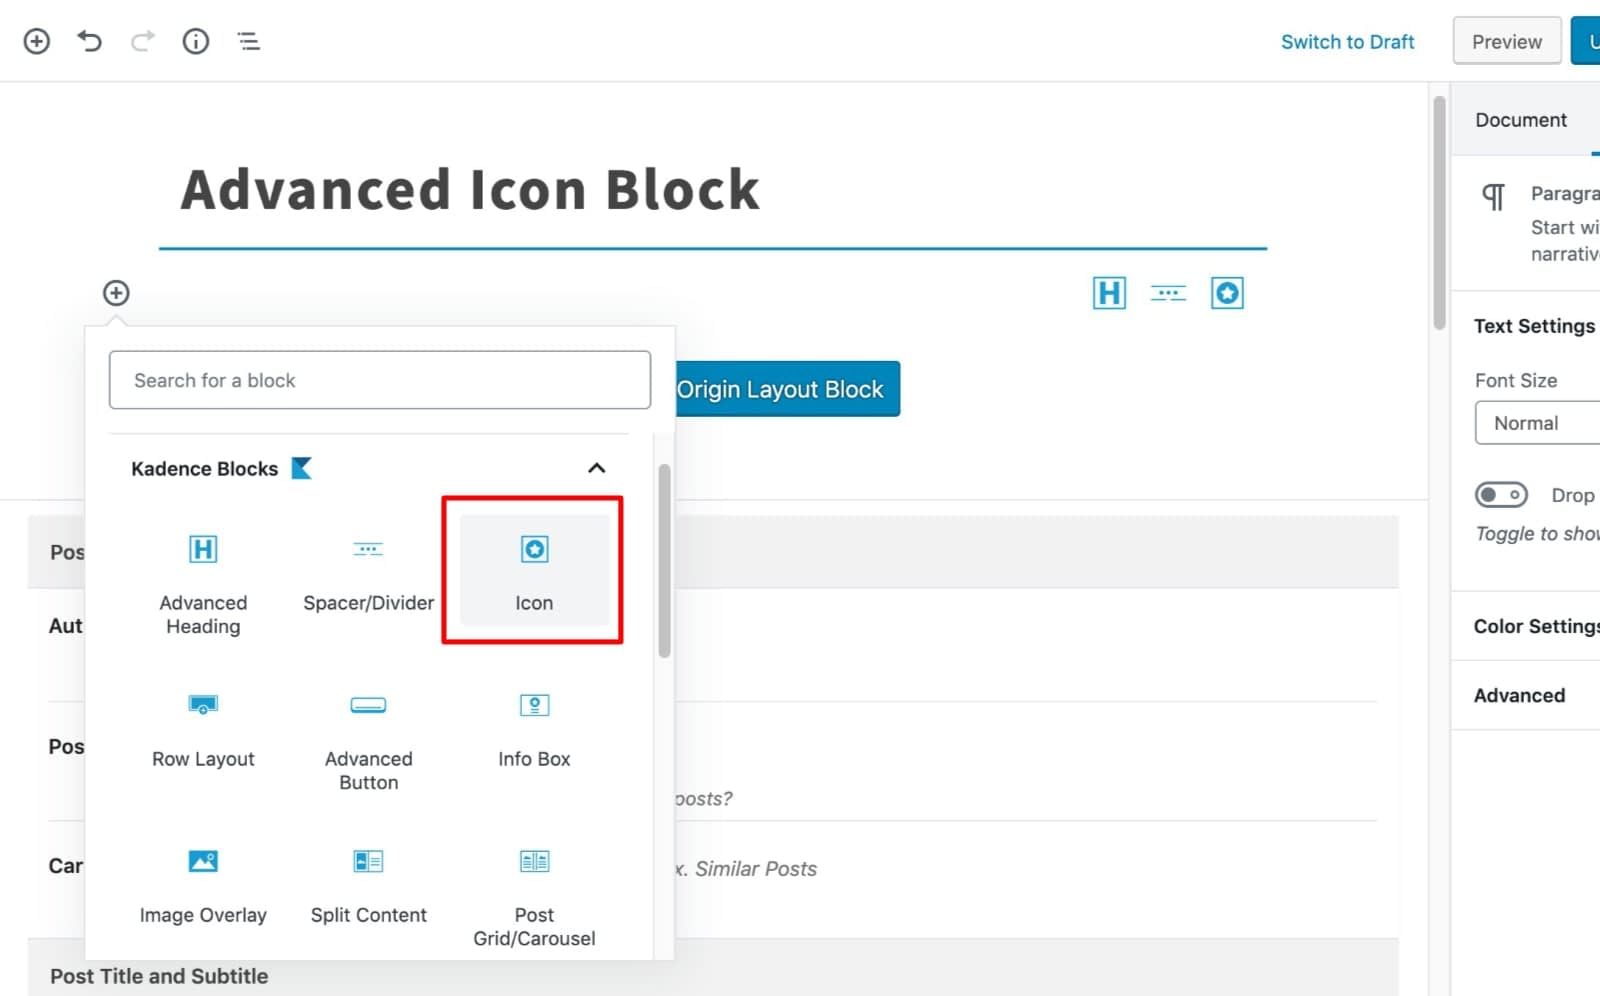 Select Icon Block